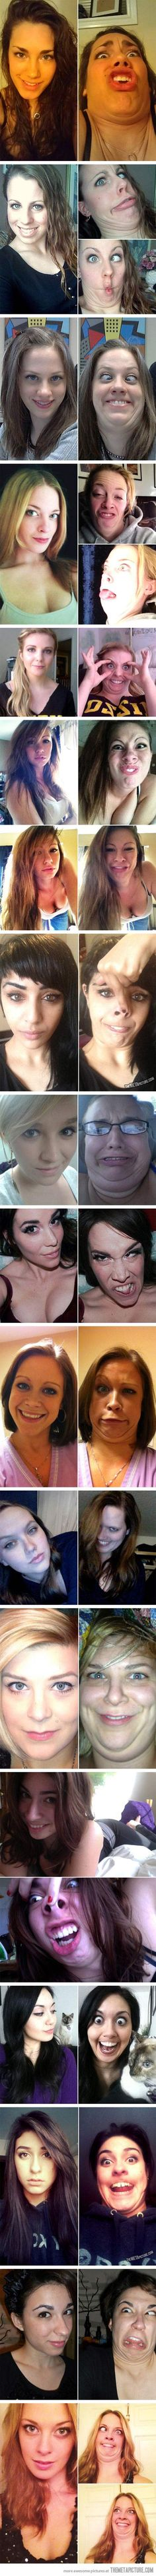 "Pretty girls making ugly faces. Cox I think we can ""out face"" these girls lol Funny Love, The Funny, Funny Pics, Funny Stuff, Laughing Face, Funny Pictures Can't Stop Laughing, Memes Funny Faces, Funny Quotes, Funny Humor"